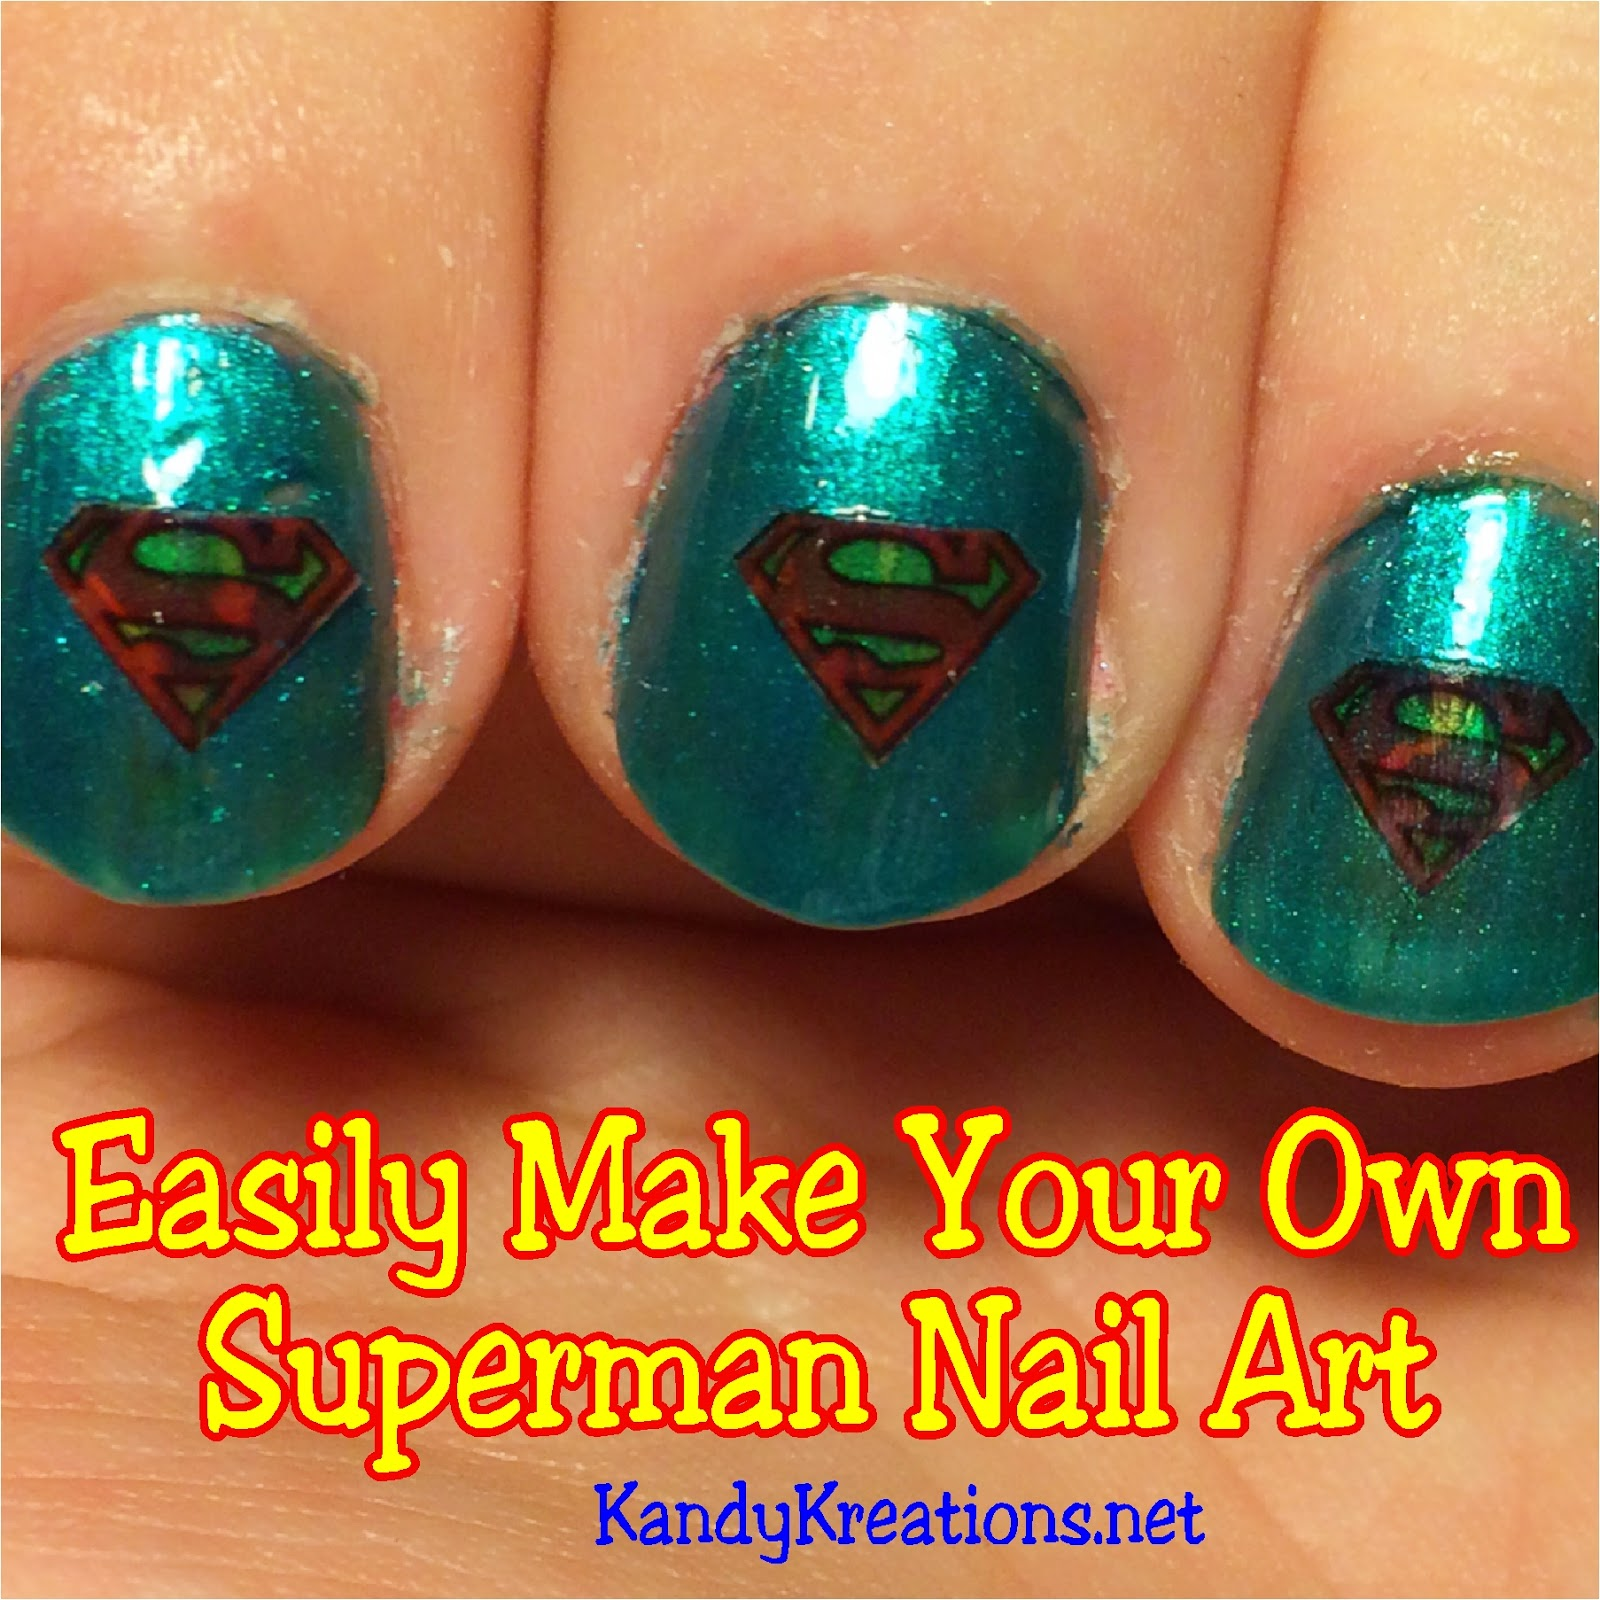 Easily Make your Own Superman Nail Art | Everyday Parties